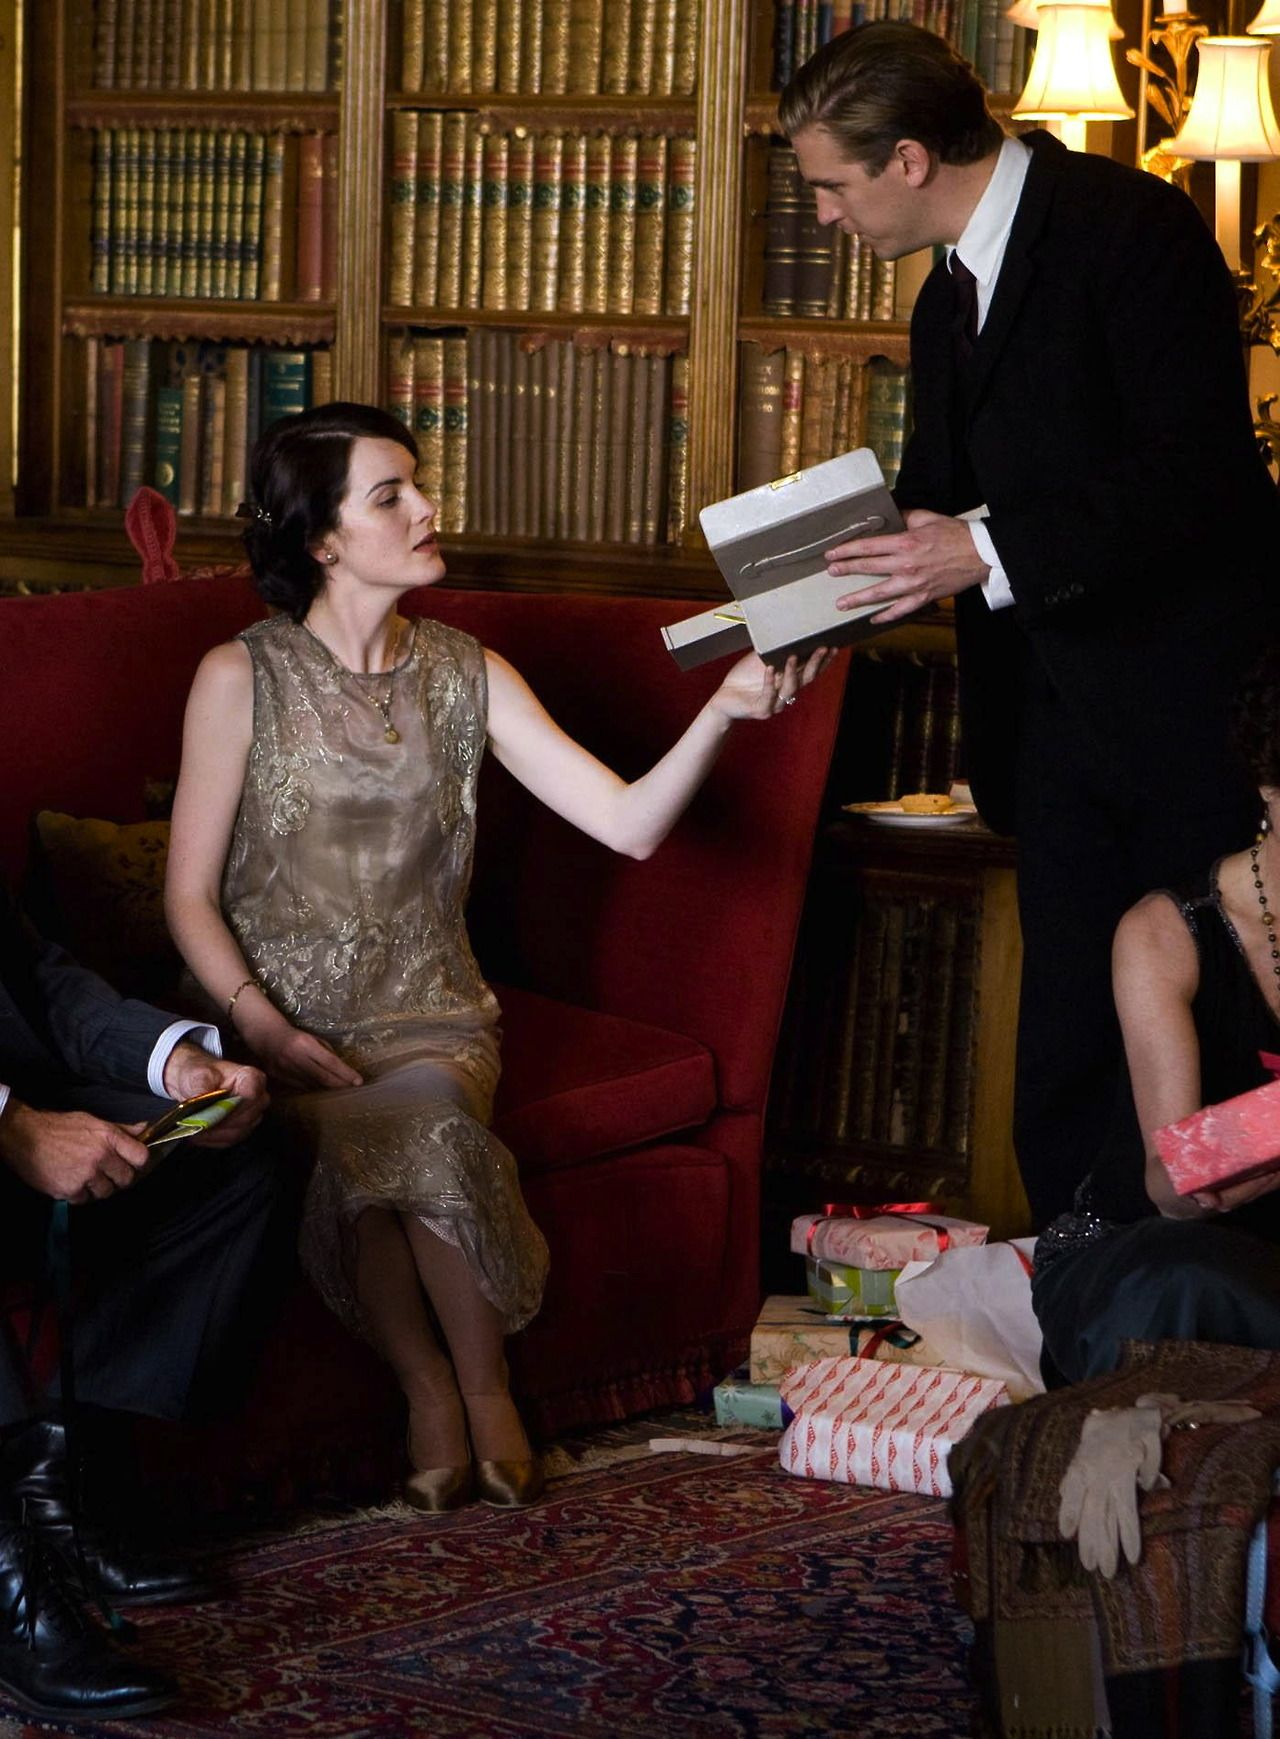 Michelle Dockery as Lady Mary Crawley and Dan Stevens as Matthew Crawley in Downton Abbey: Christmas Special (2011).